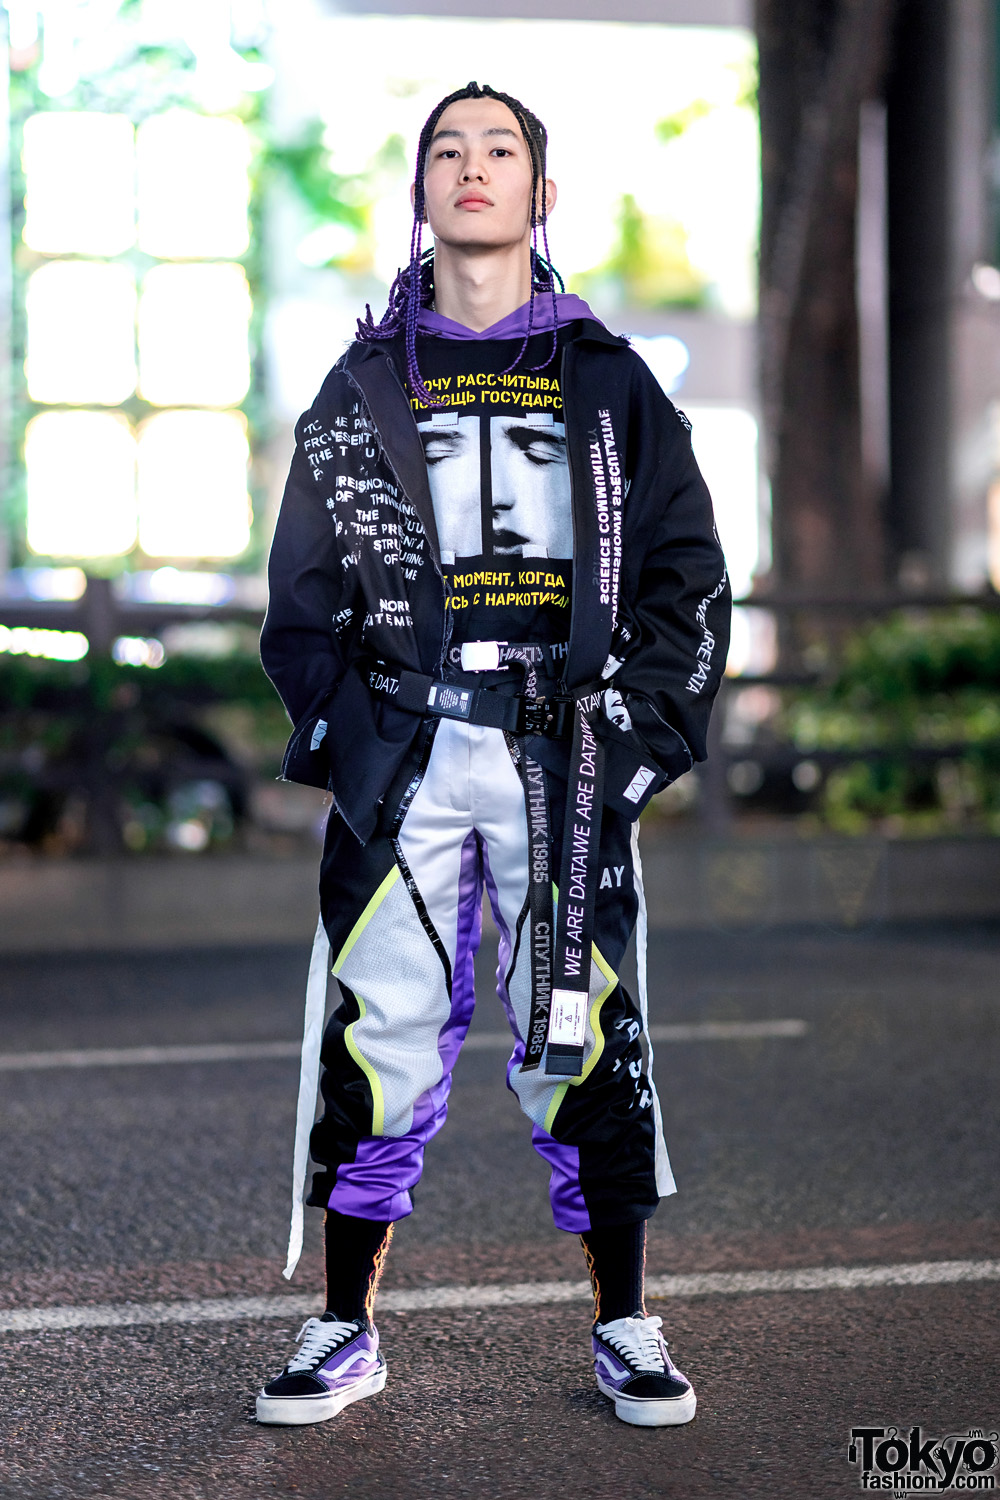 5 Easy Ways To Incorporate Streetwear Into Your Wardrobe